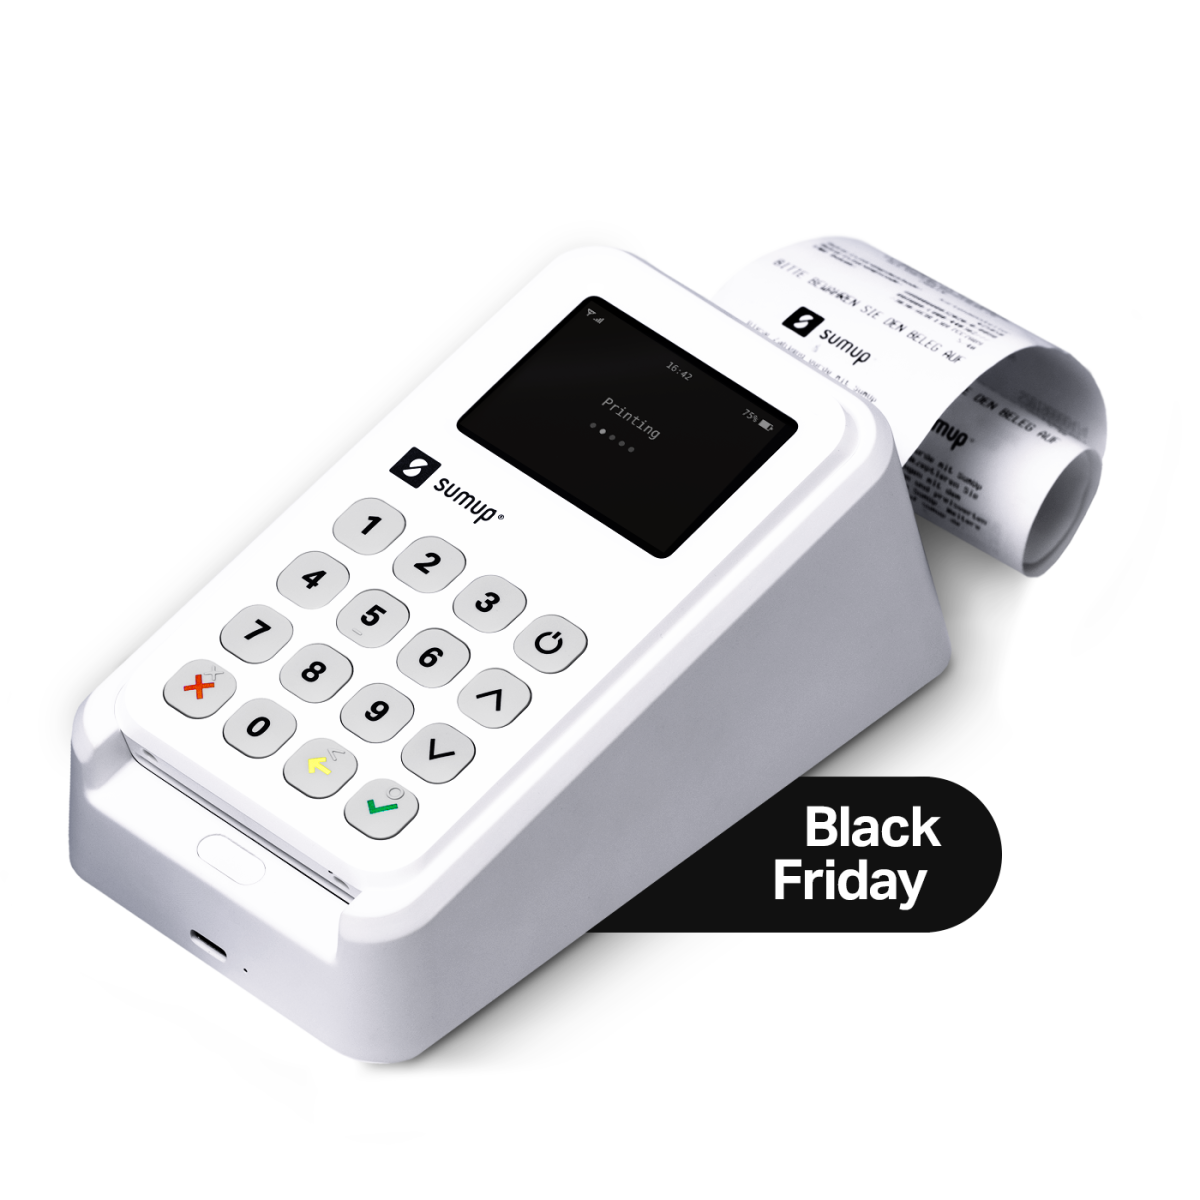 3g card reader in a printer cradle with a black friday label